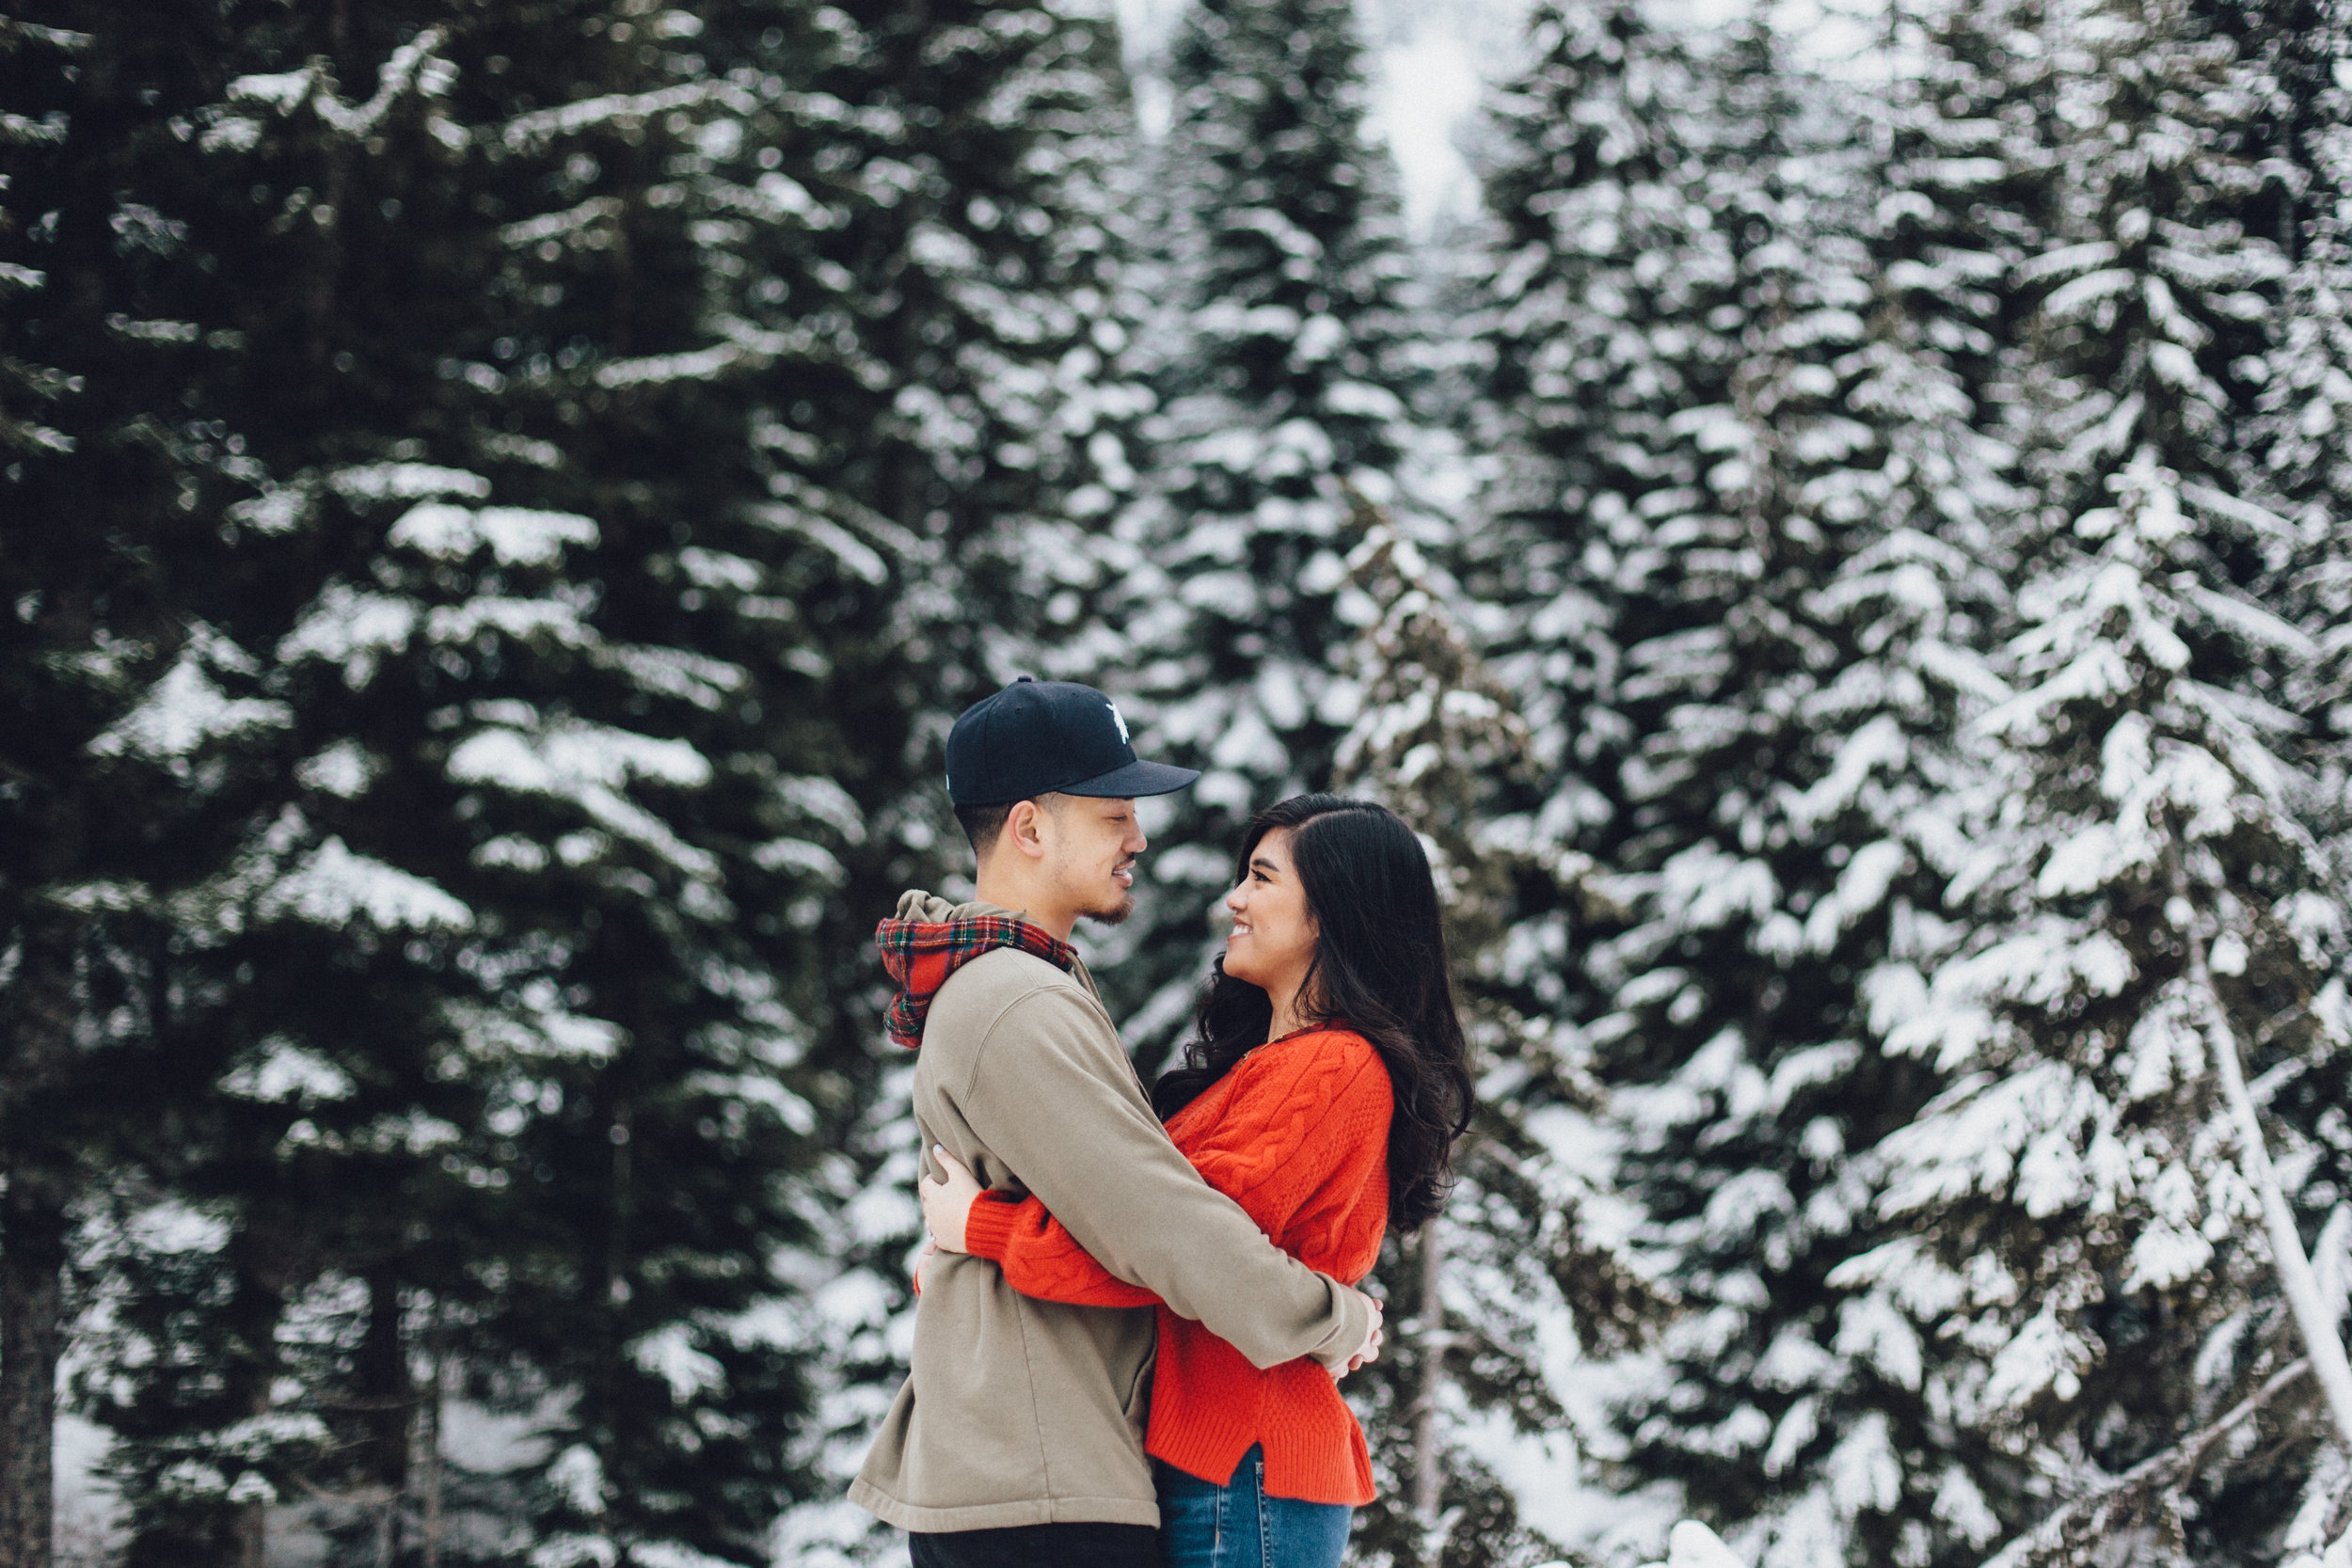 rithanie & anthony - engagements | snoqualmie